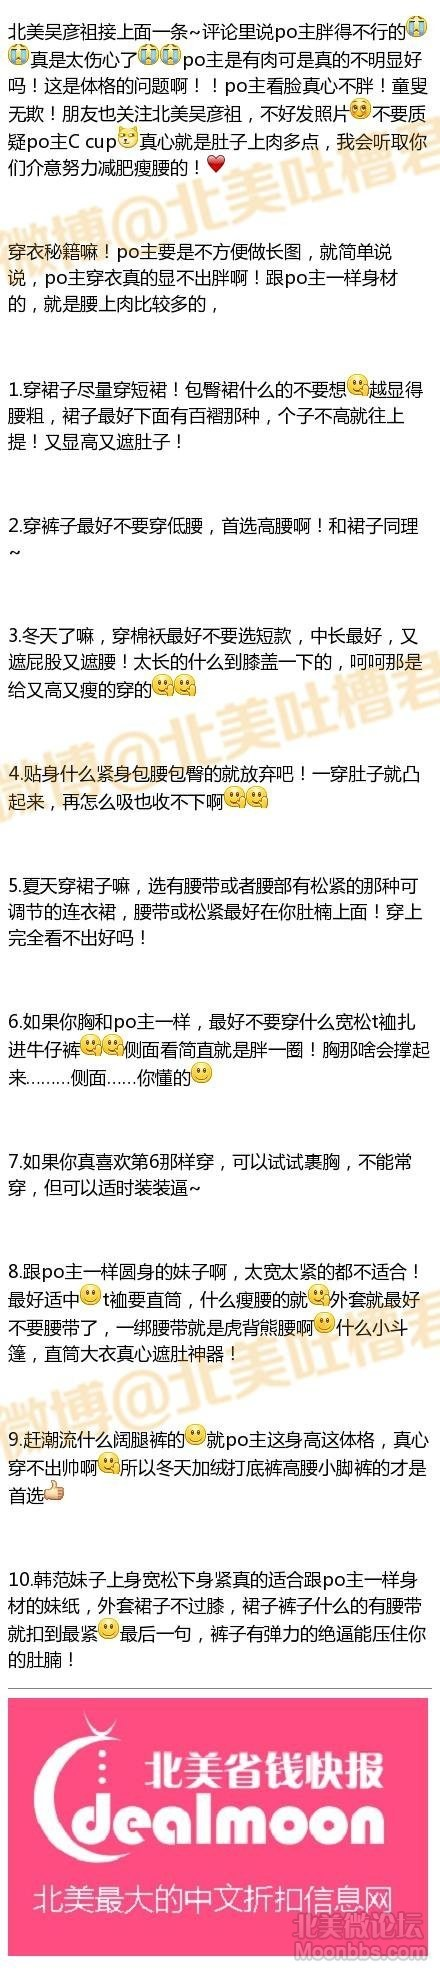 changweibo(2)_副本.png